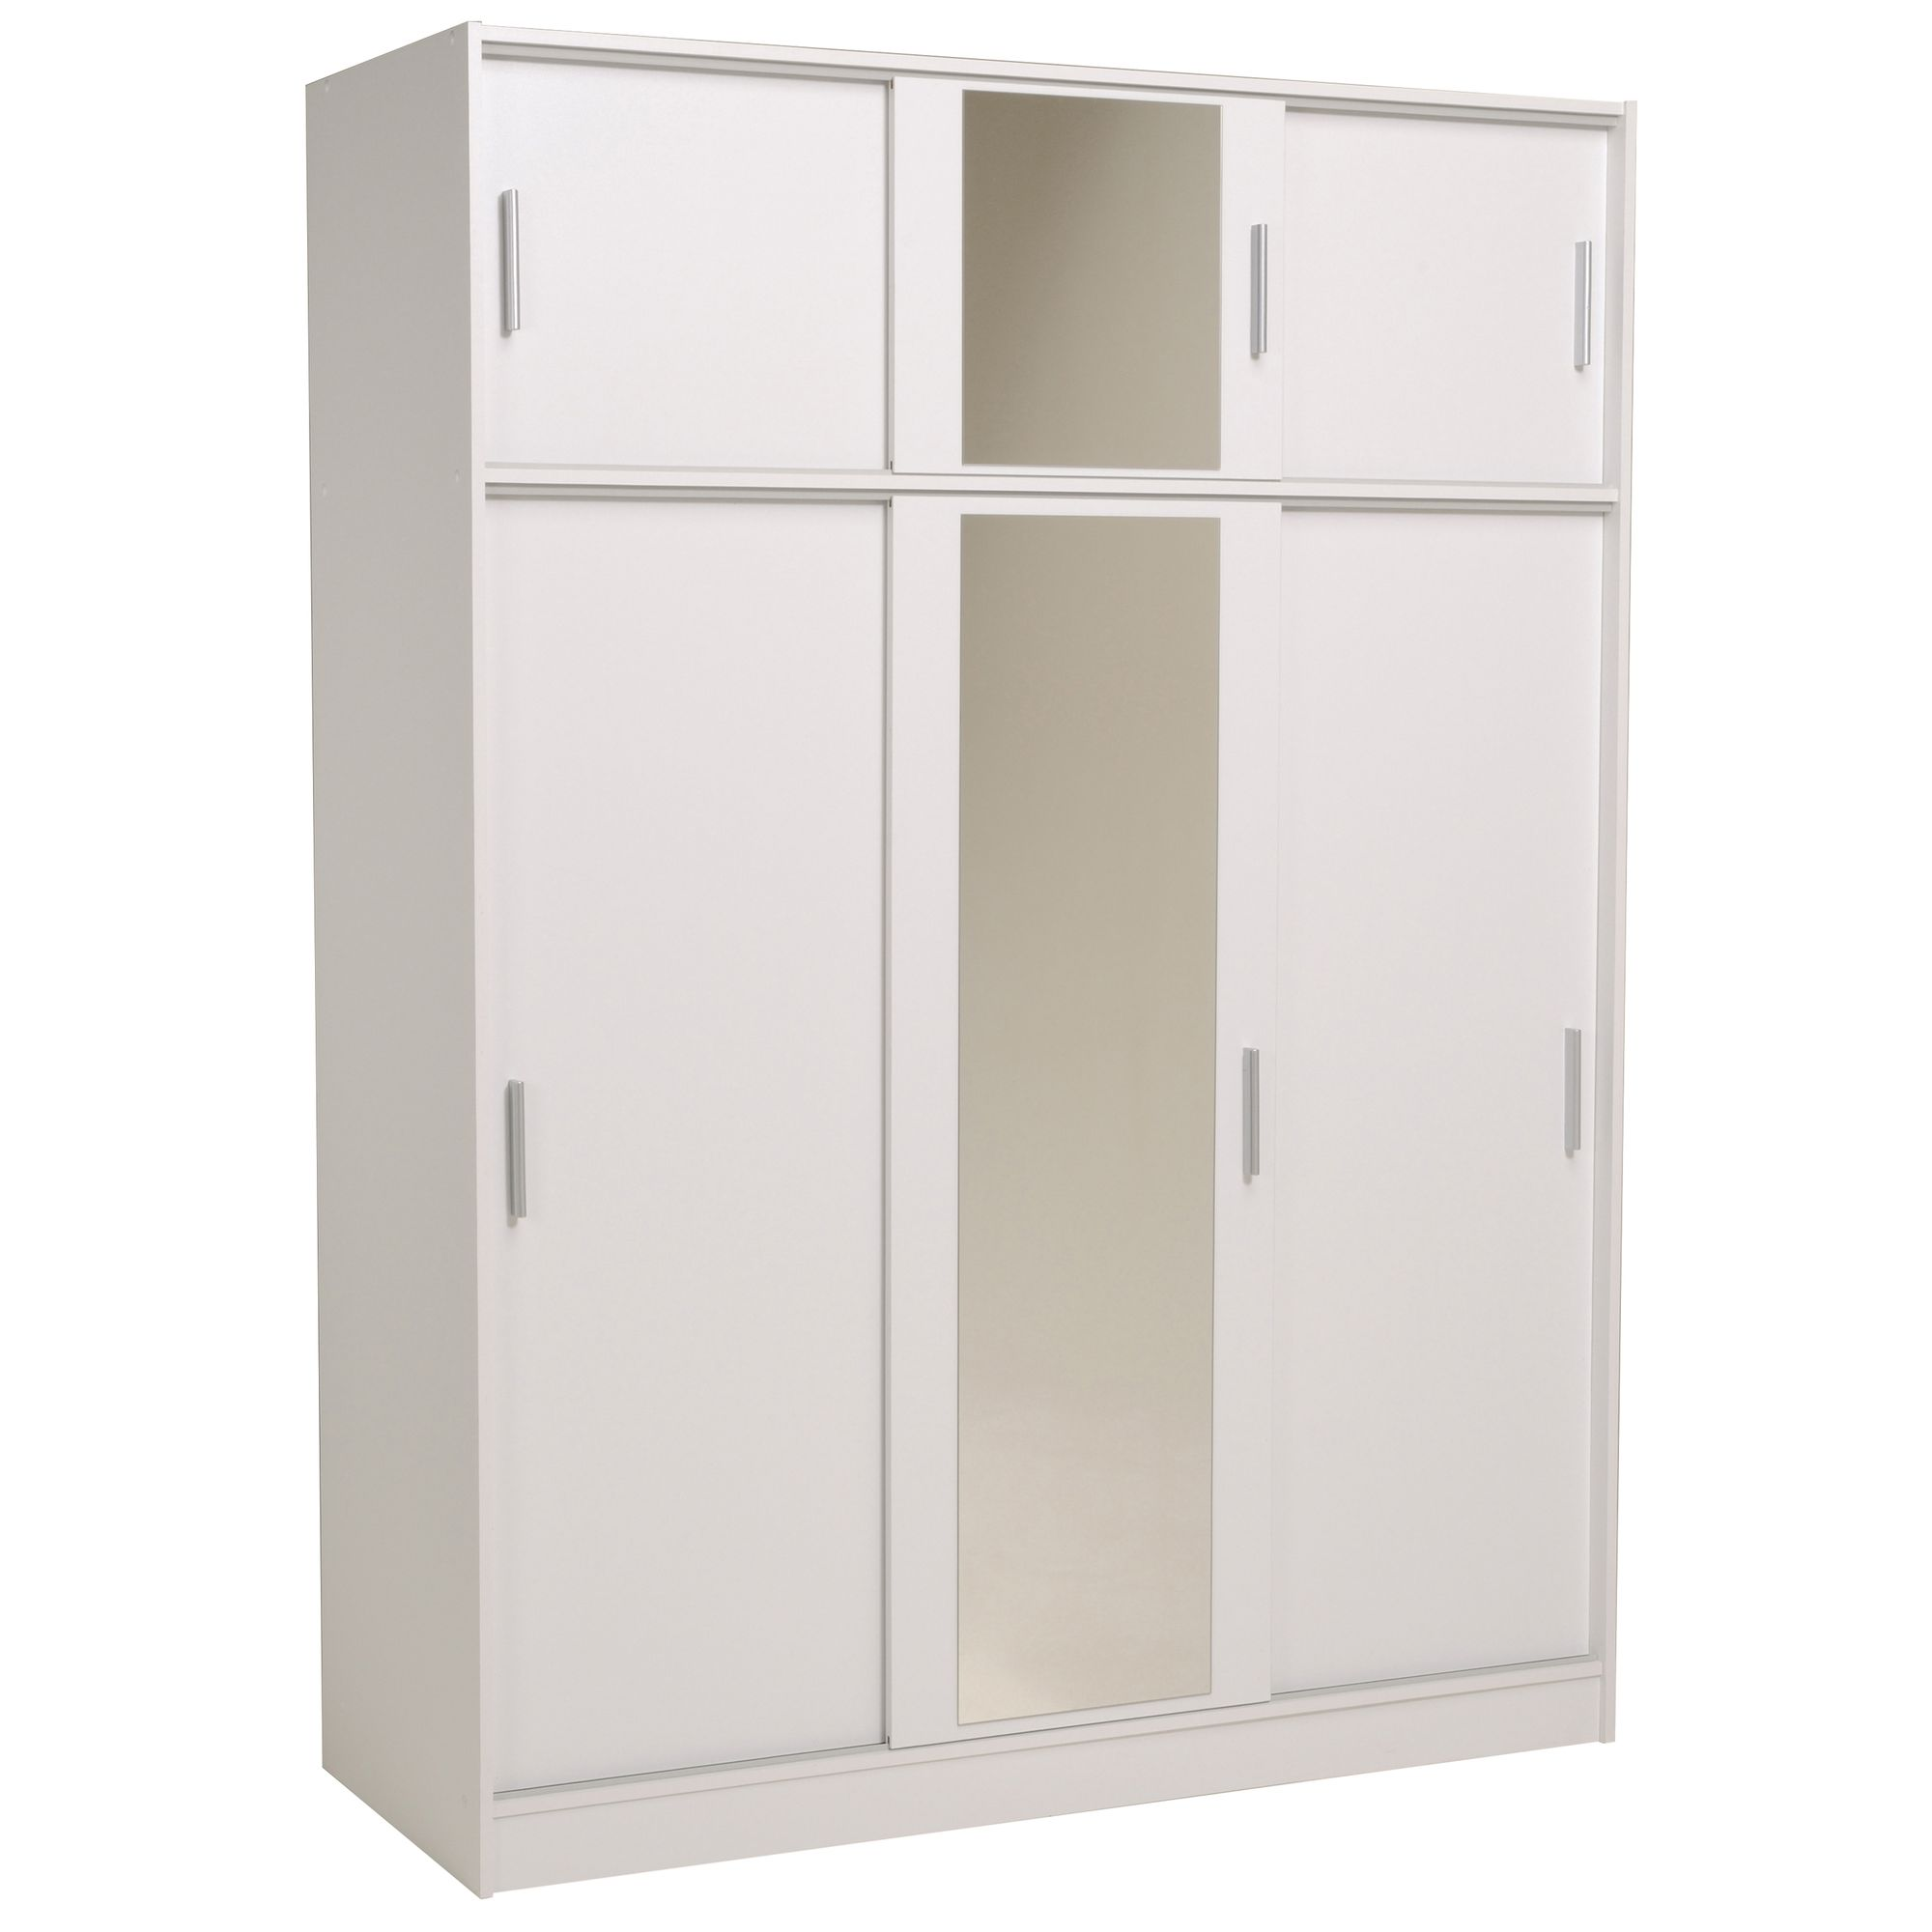 Parisot Alicia 149 cm Wardrobe - Wenge at Tesco Direct